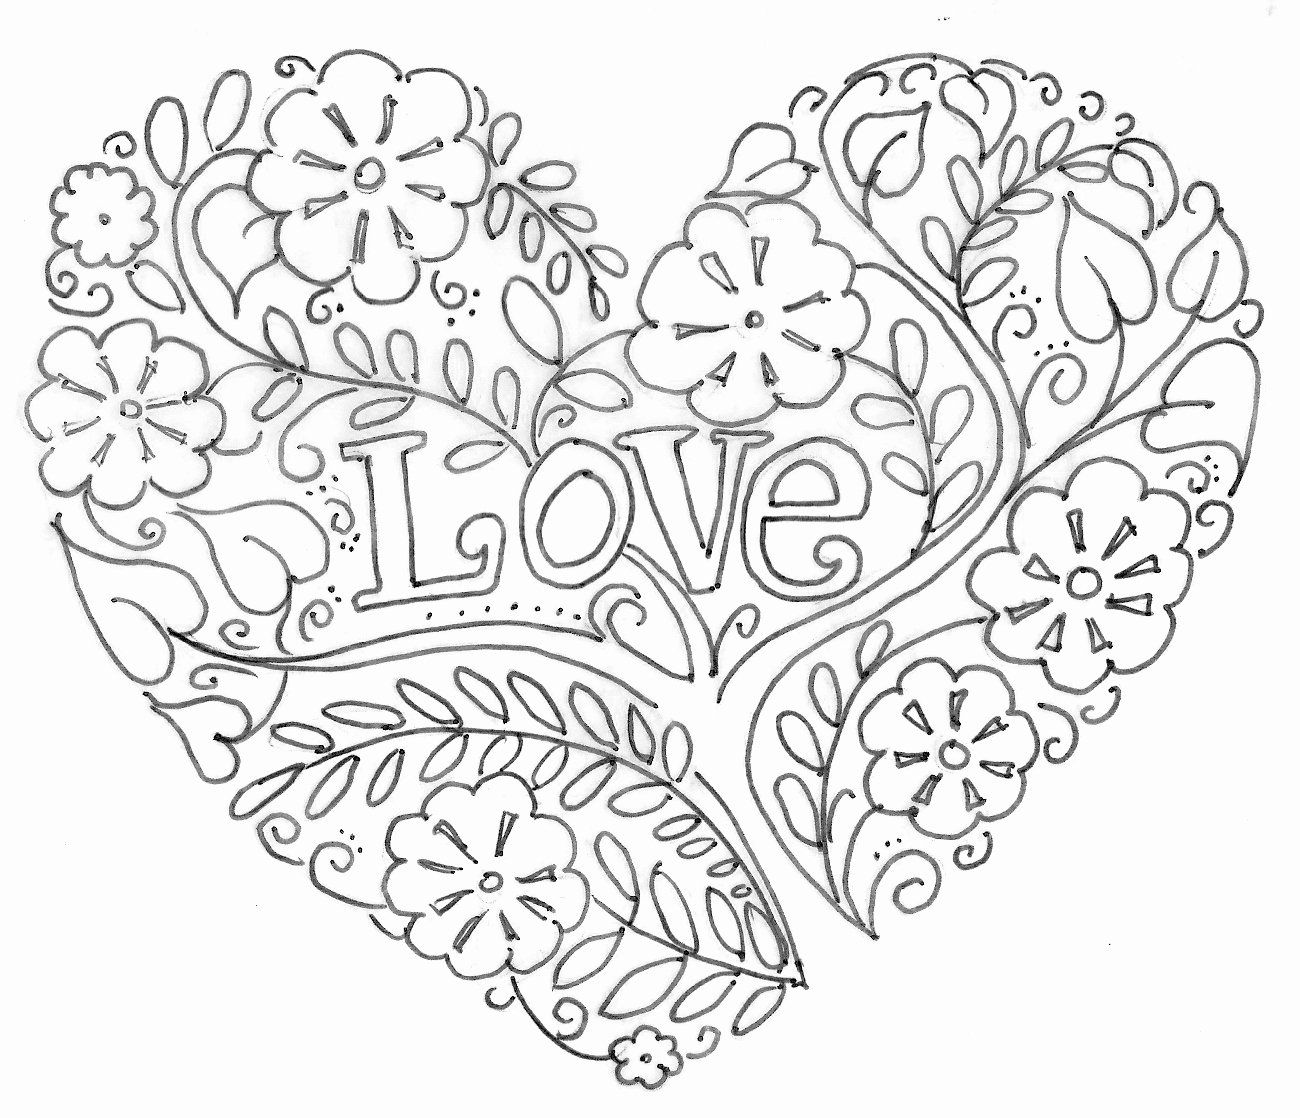 Coloring Page For Valentines Day Elegant Valentines Day Coloring Pages For Ad Heart Coloring Pages Valentine Coloring Pages Printable Valentines Coloring Pages